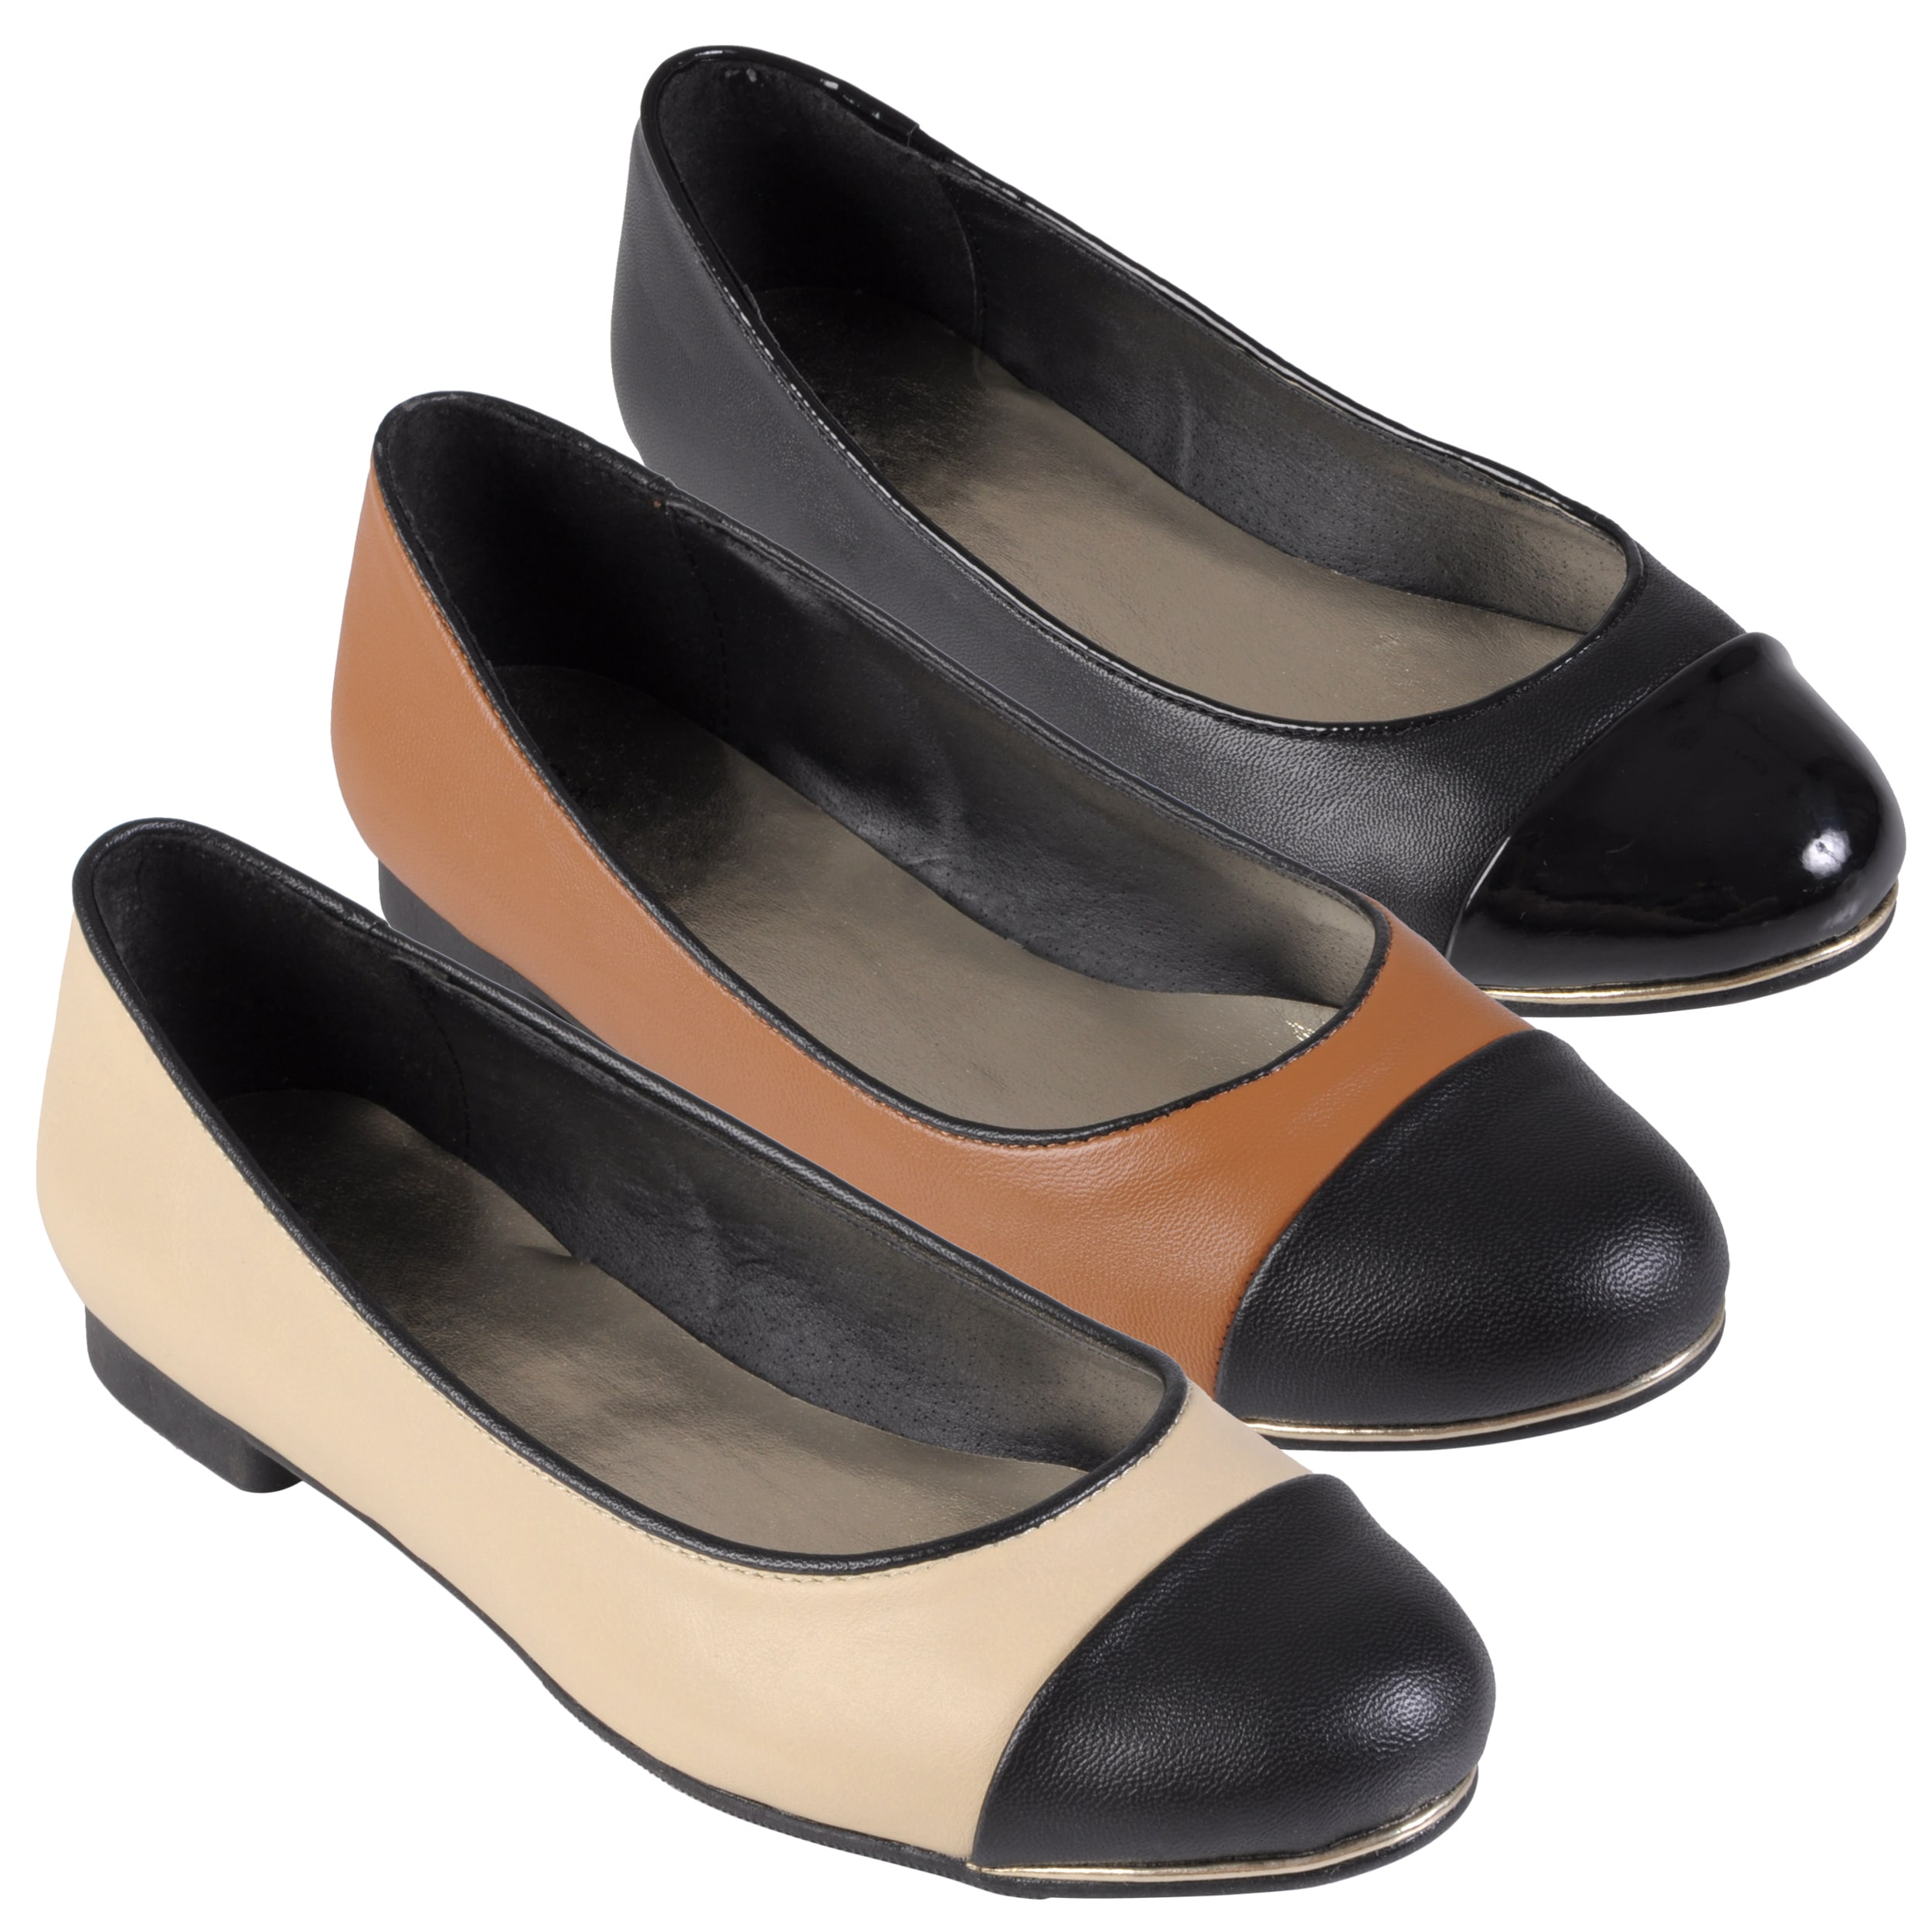 Journee Collection Women's 'Mansion-15' Round Cap Toe Ballet Flats